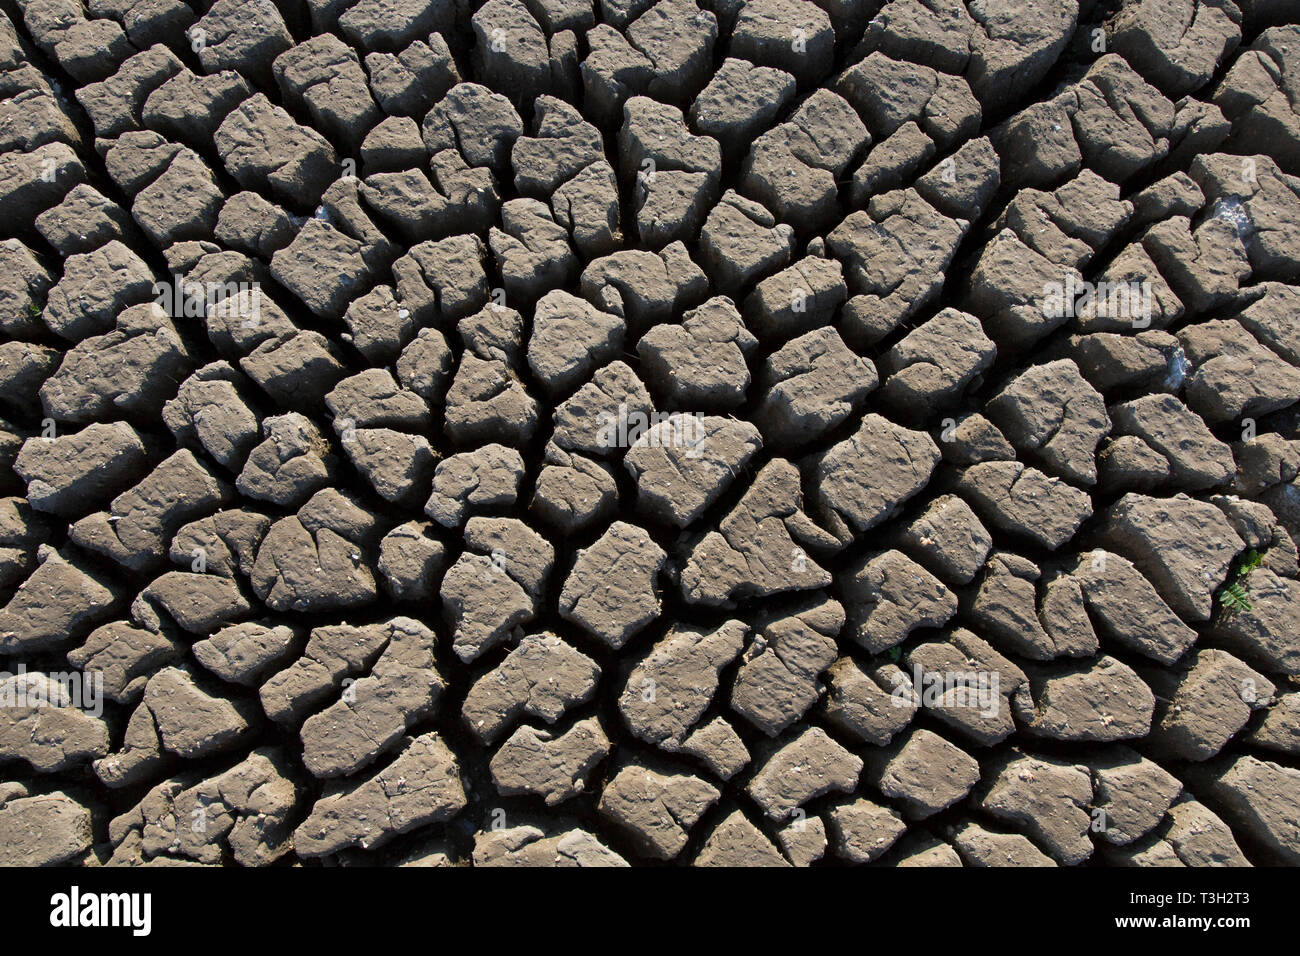 Abstract pattern of dry cracked clay mud in dried up lake bed / riverbed caused by prolonged drought in summer in hot weather temperatures - Stock Image